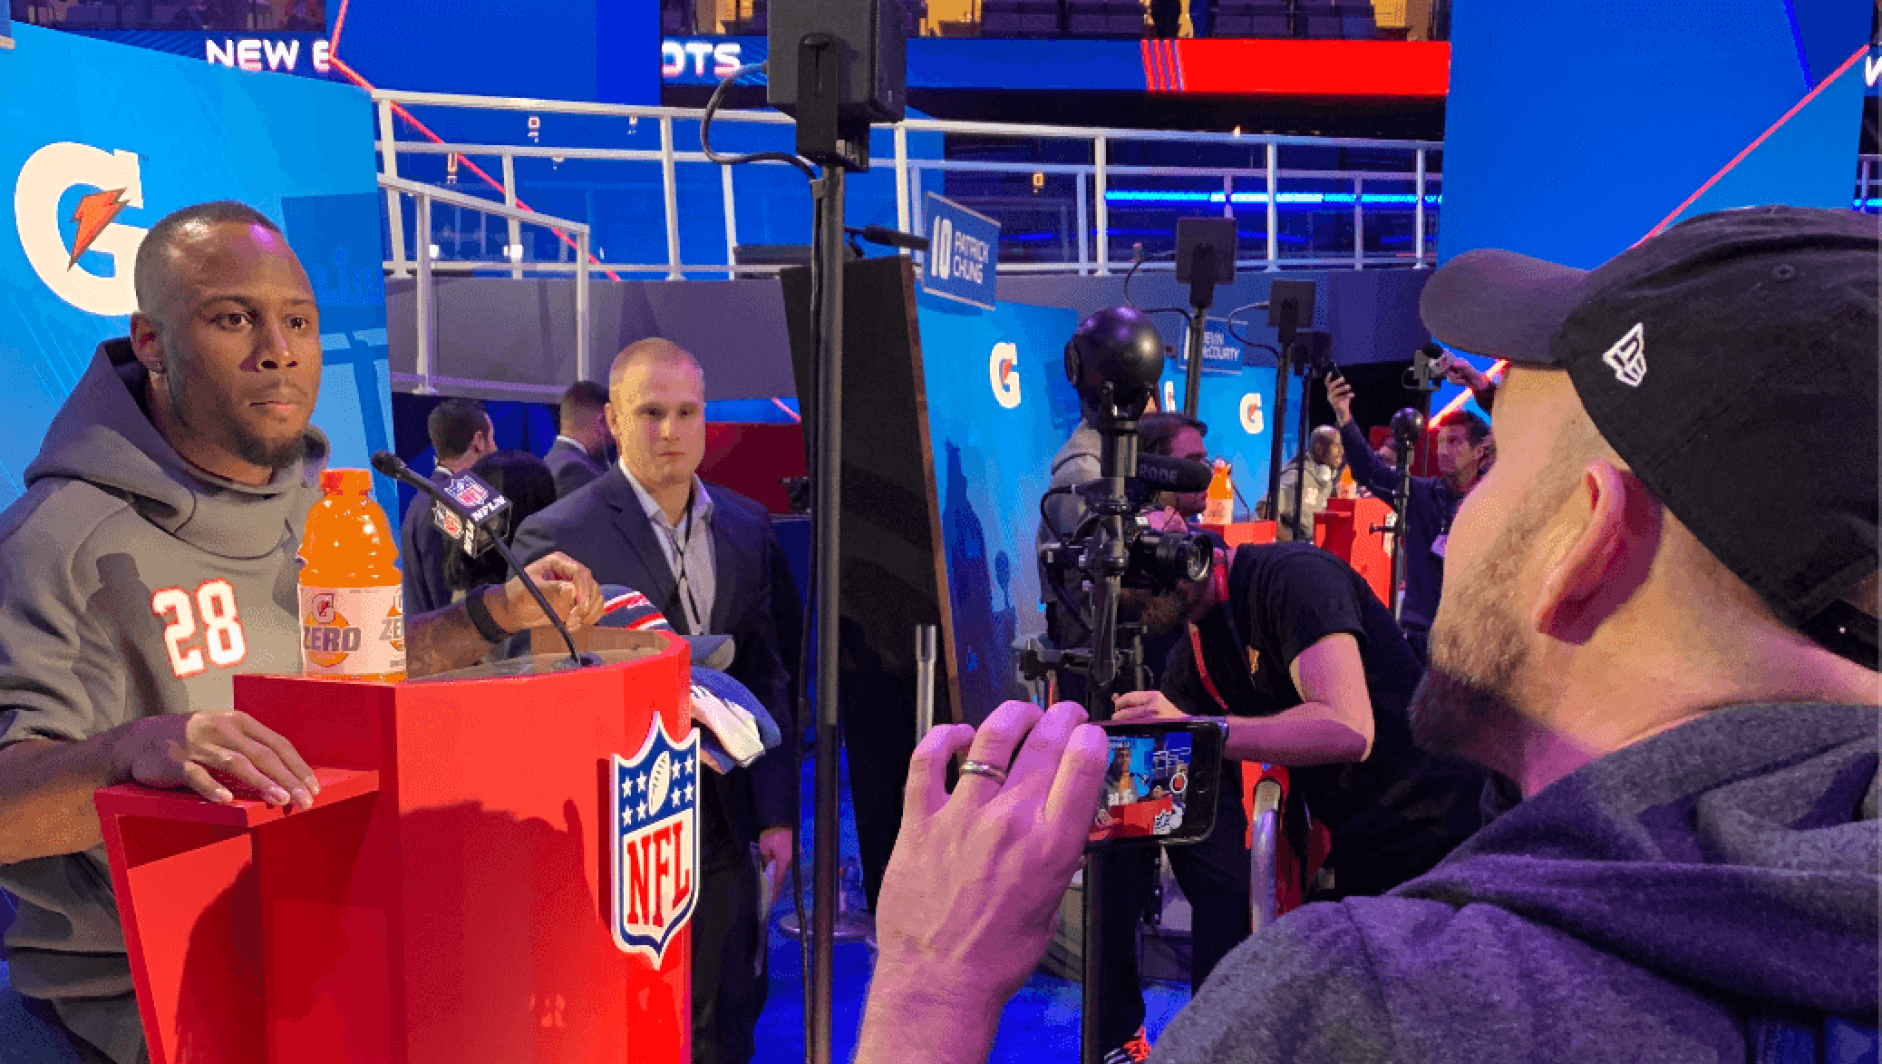 Professor Kyle Belanger on Radio Row at the NFL Super Bowl LIII.